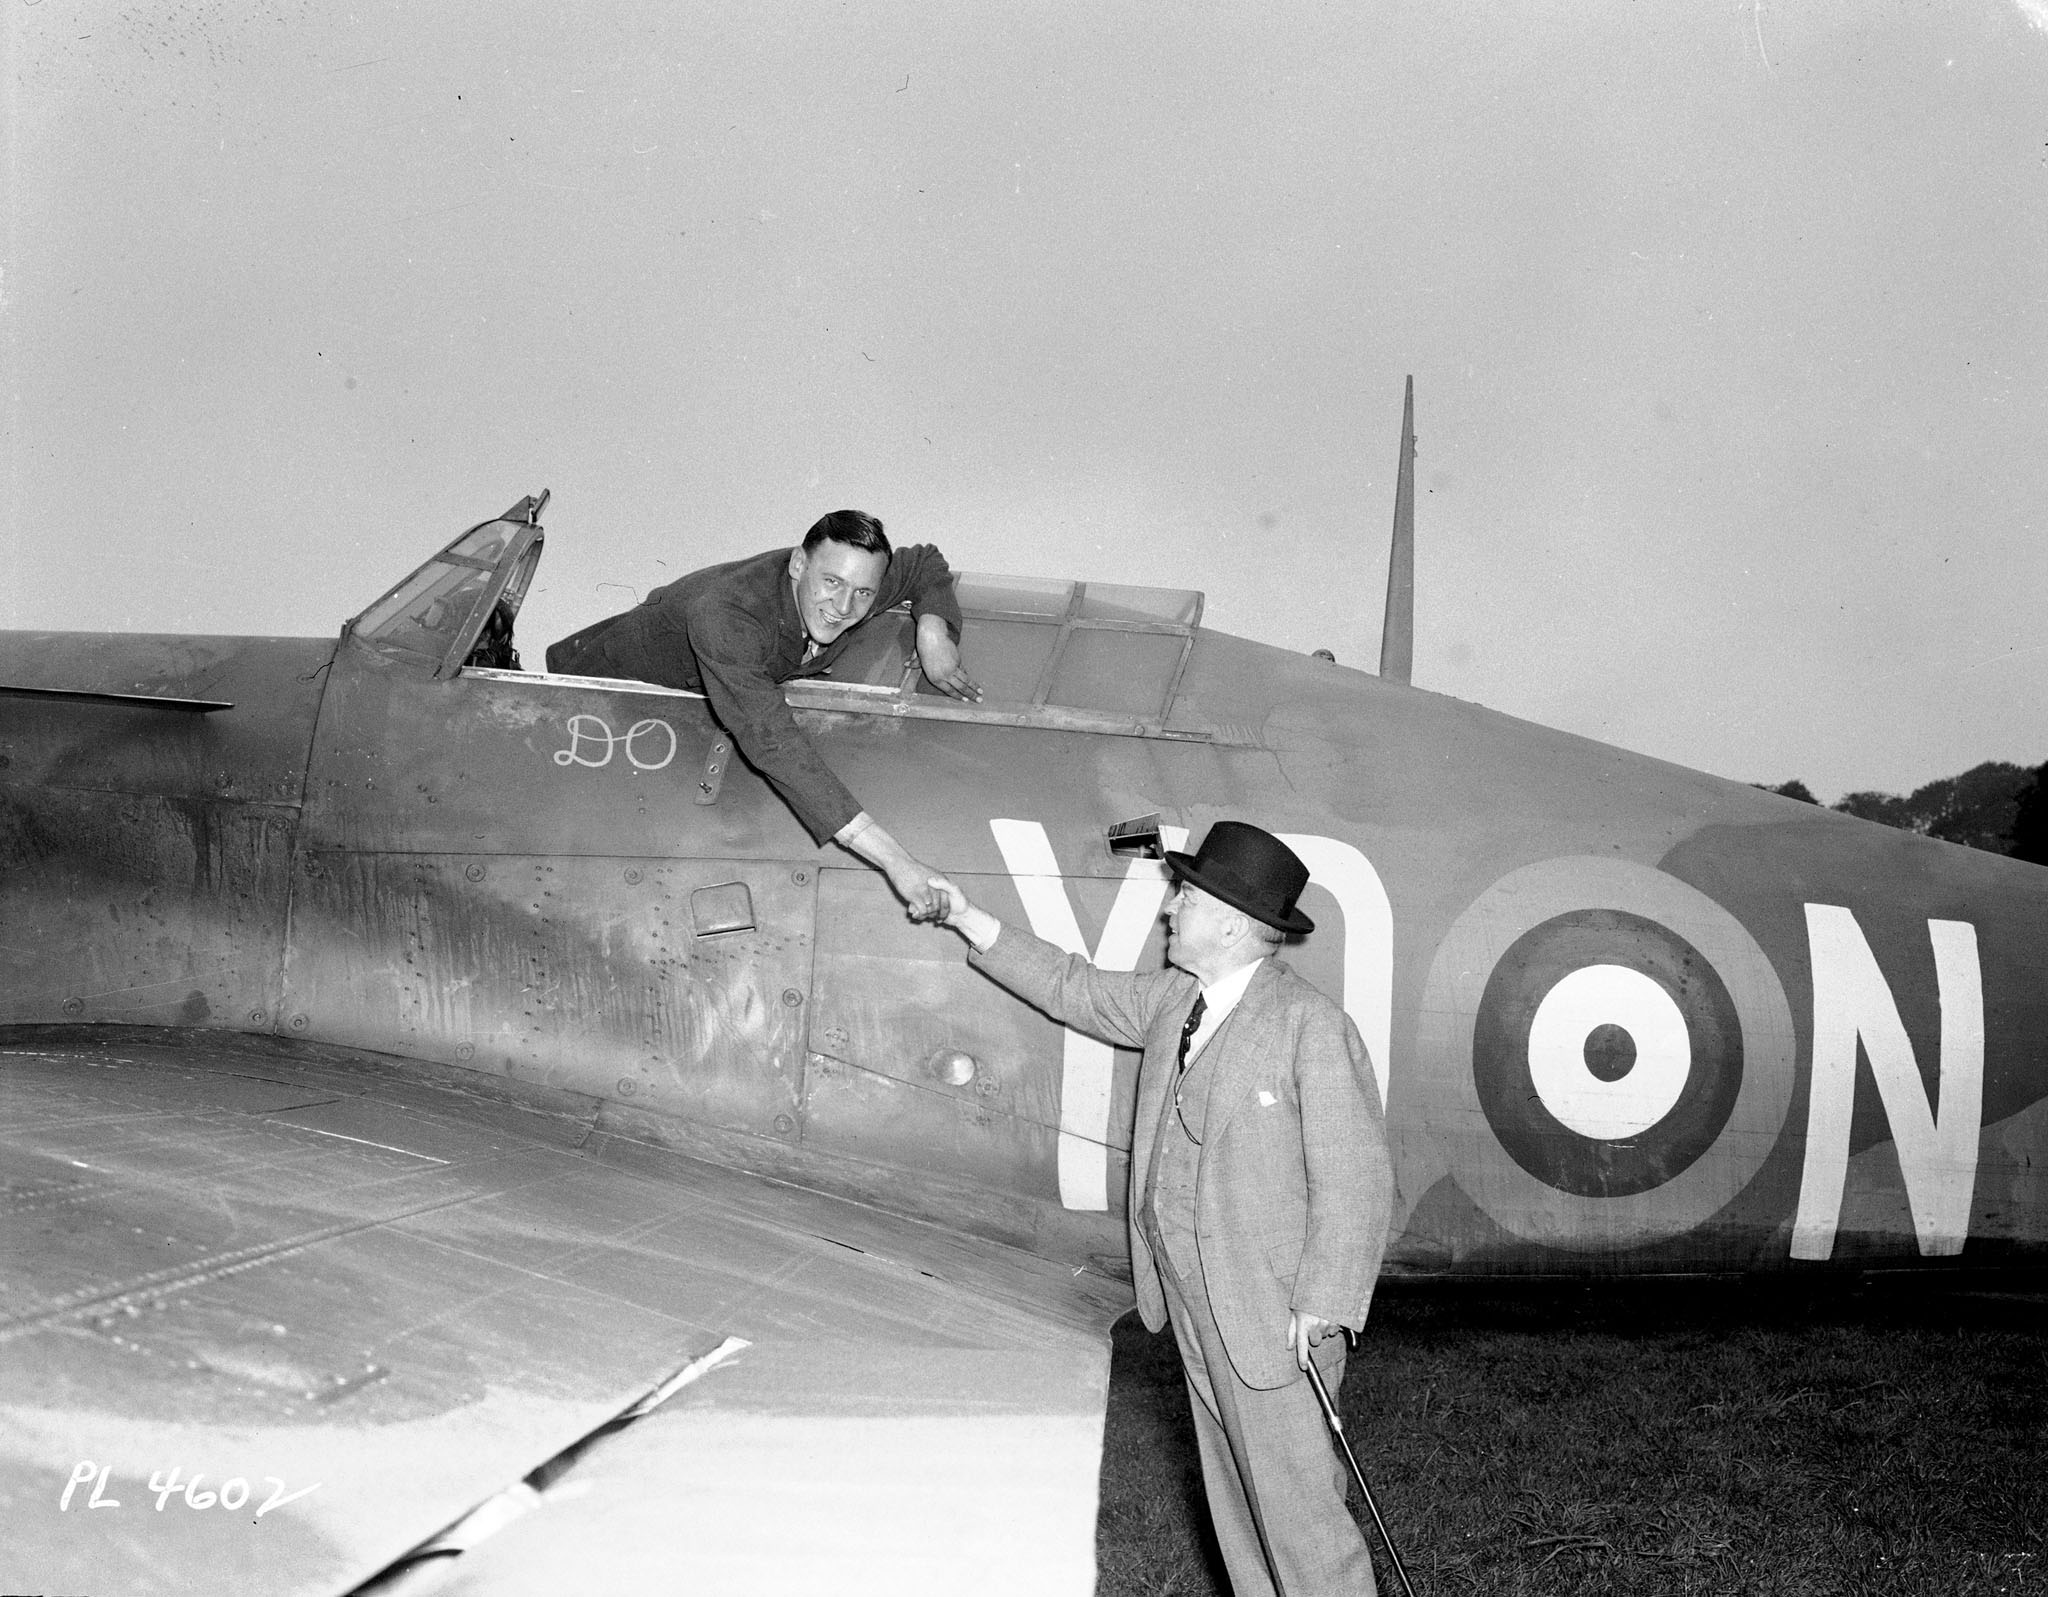 "On September 10, 1941, ""somewhere"" in England, Canadian Prime Minister Mackenzie King shakes hands with Royal Canadian Air Force 401 Squadron's Leading Aircraftman Walter Kornack, an aircraft maintainer from Verdun, Québec, over the wing of a Hurricane fighter aircraft. PHOTO: DND Archives, PL-4602"